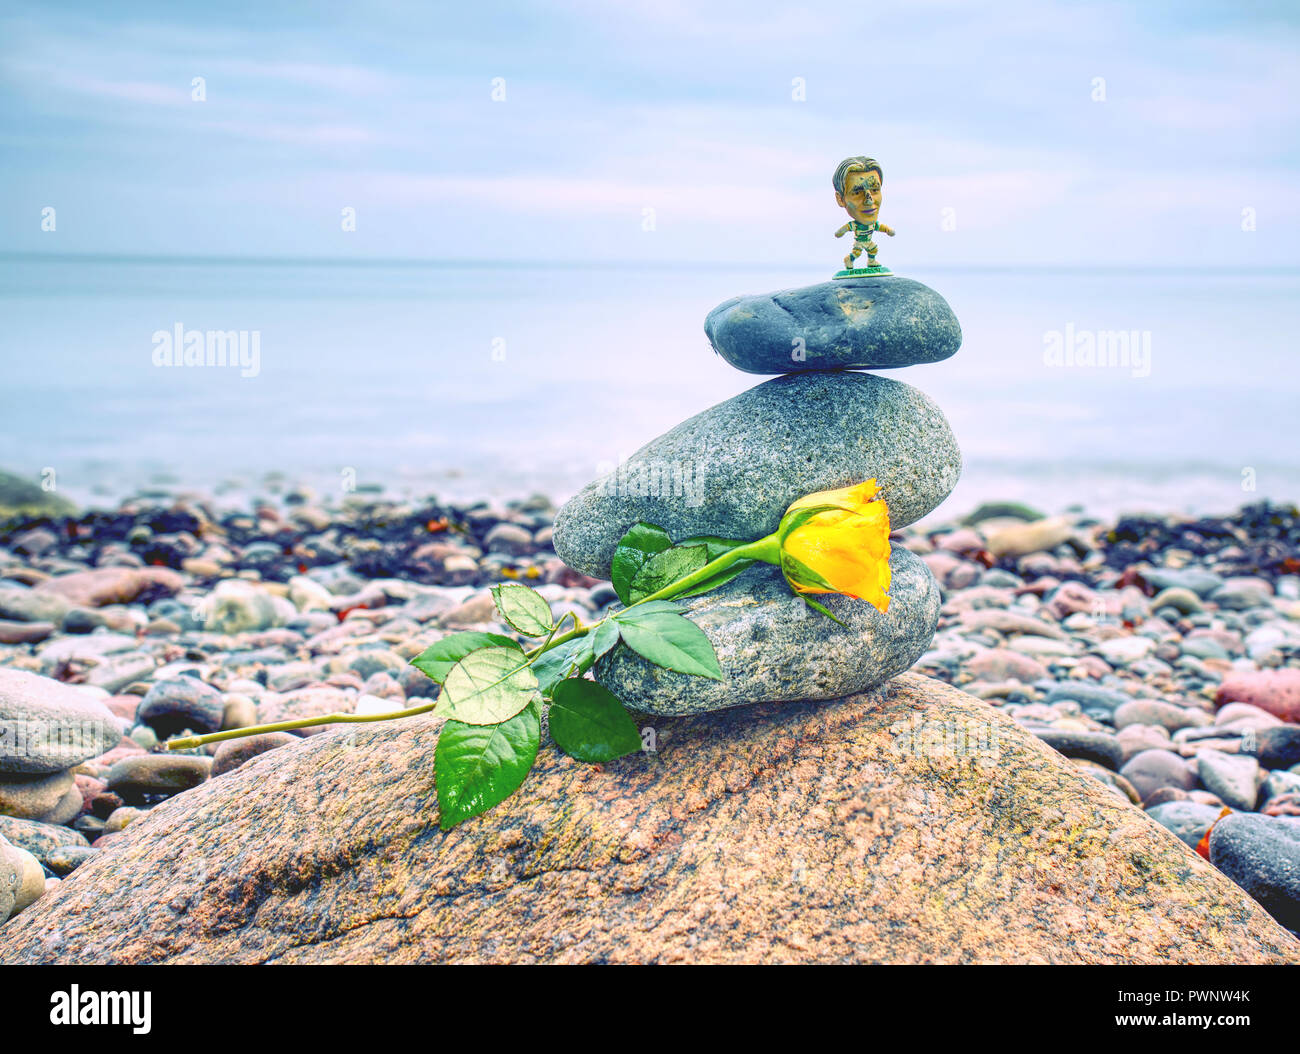 Pyramid of sea stones on pebbles with yellow rose. Chidren toy of football player. Moody walk at sea shore. Seascape - Stock Image